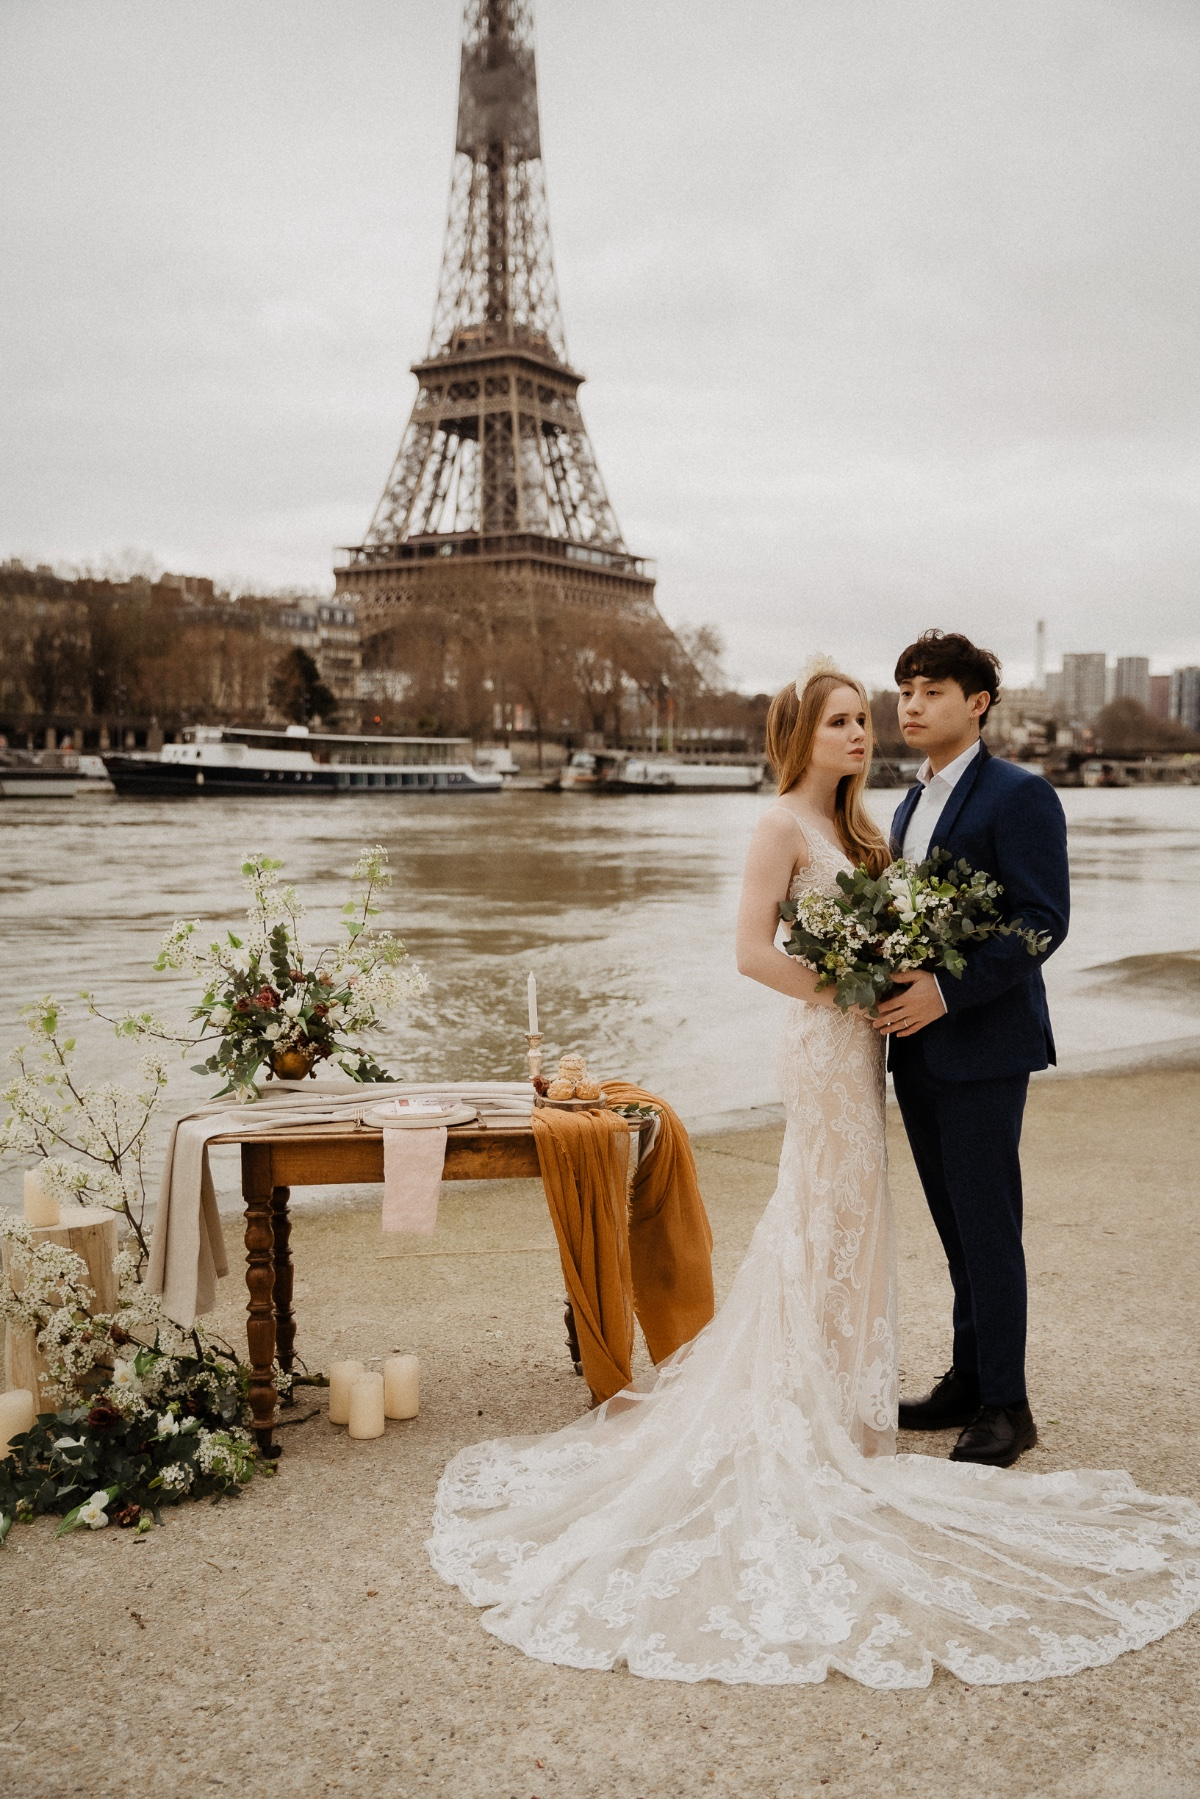 Paris elopement by the Seine River in France